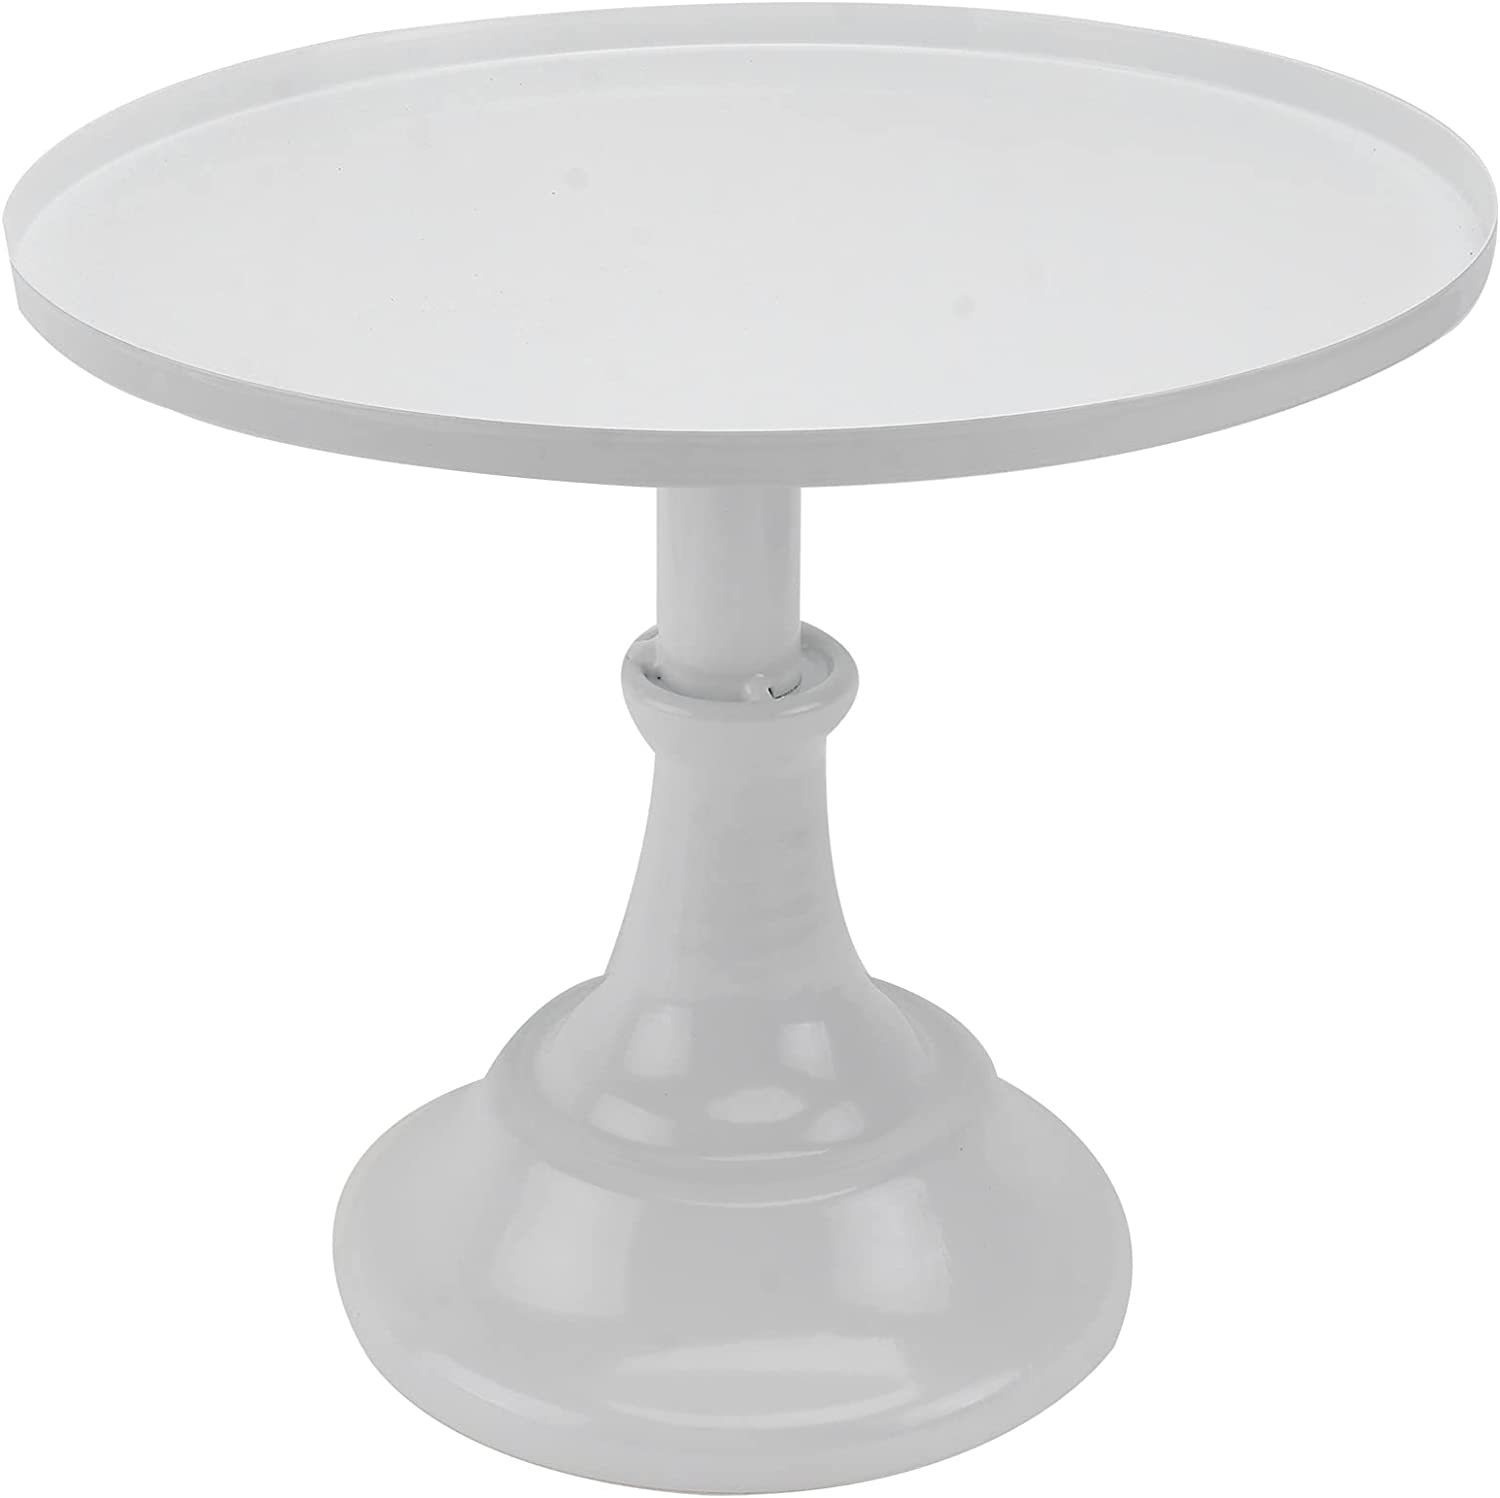 Hemoton Iron Cake Stand Branded goods Wed Wrought Dealing full price reduction Classic Home